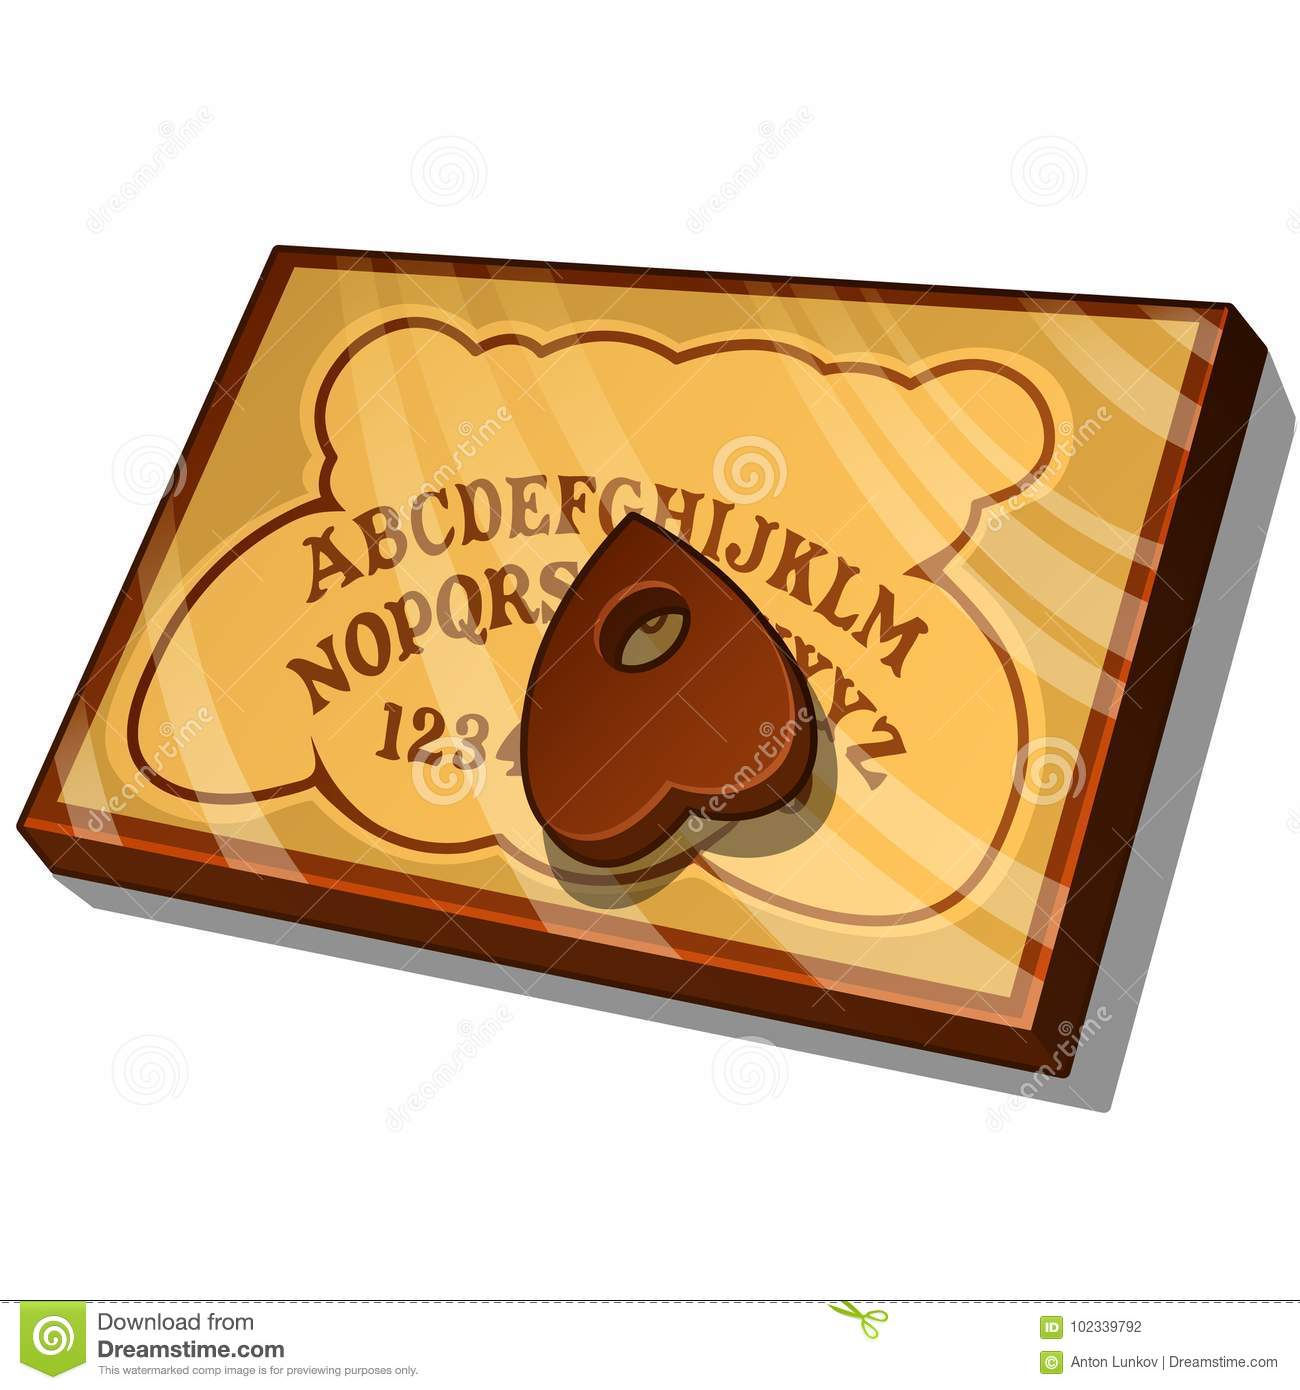 Wooden Ouija Board with English letters. Vector illustration in cartoon style isolated on white